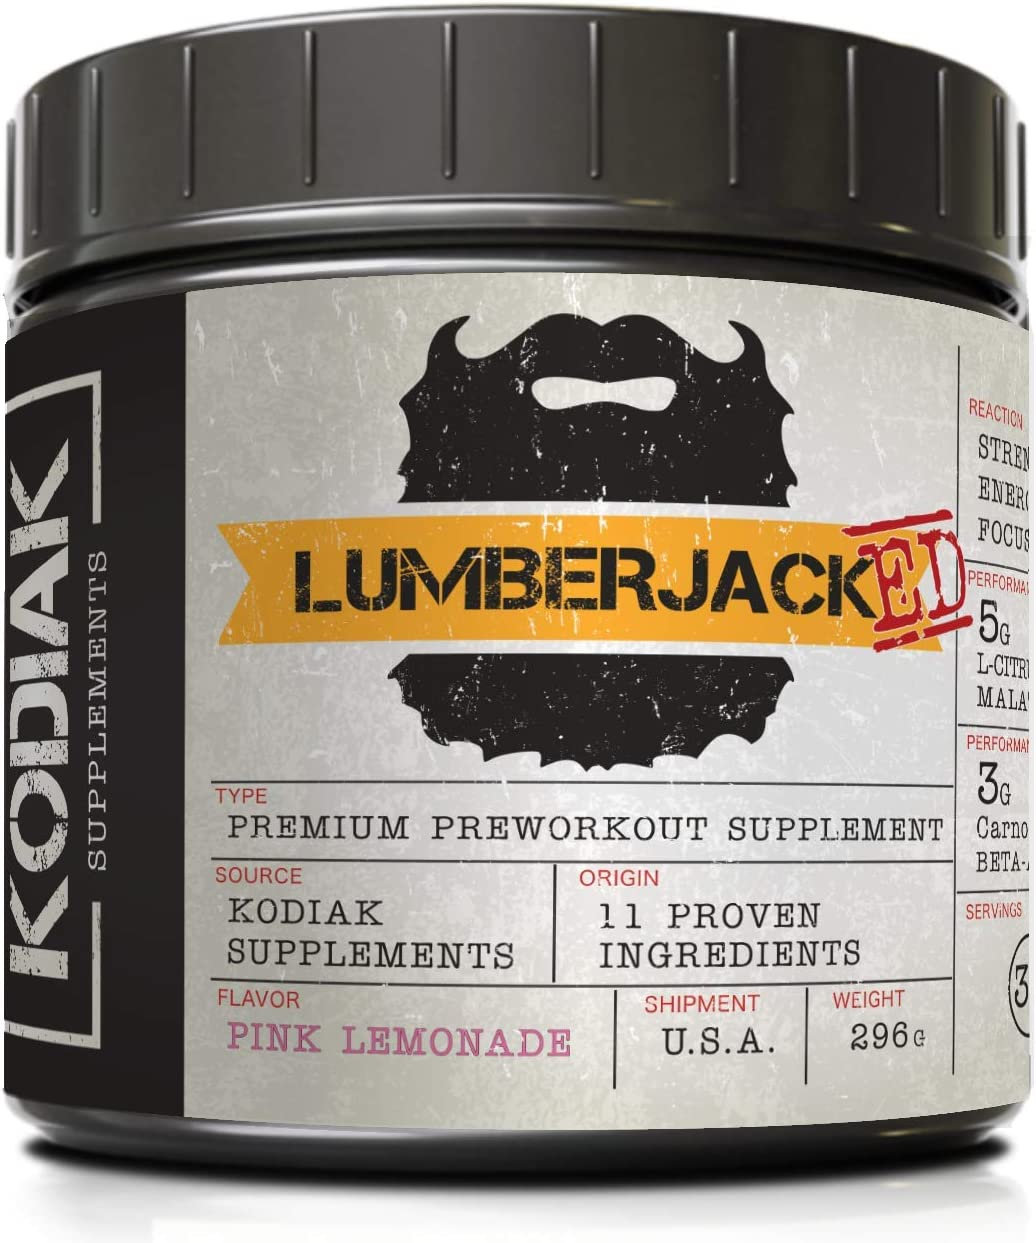 LUMBERJACKED Pre-Workout Supplement with CarnoSyn - 30 Servings - Better Pumps, Strength, Energy, and Focus - No Crash Pink Lemonade